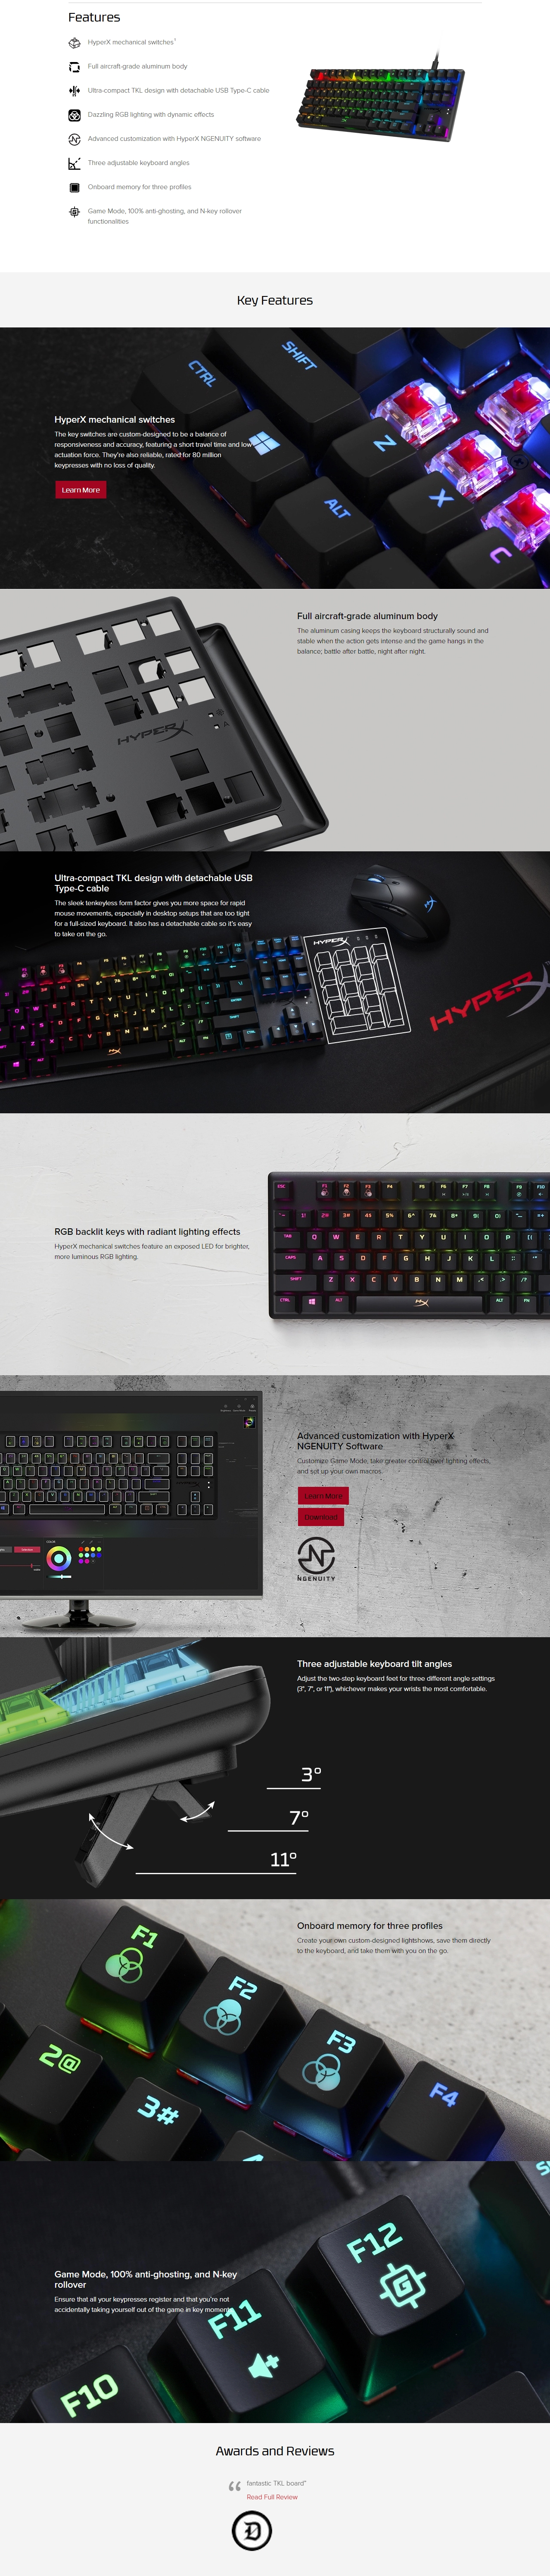 A large marketing image providing additional information about the product Kingston HyperX Alloy Origins Core RGB Mechanical Gaming Keyboard (Aqua Switch) - Additional alt info not provided